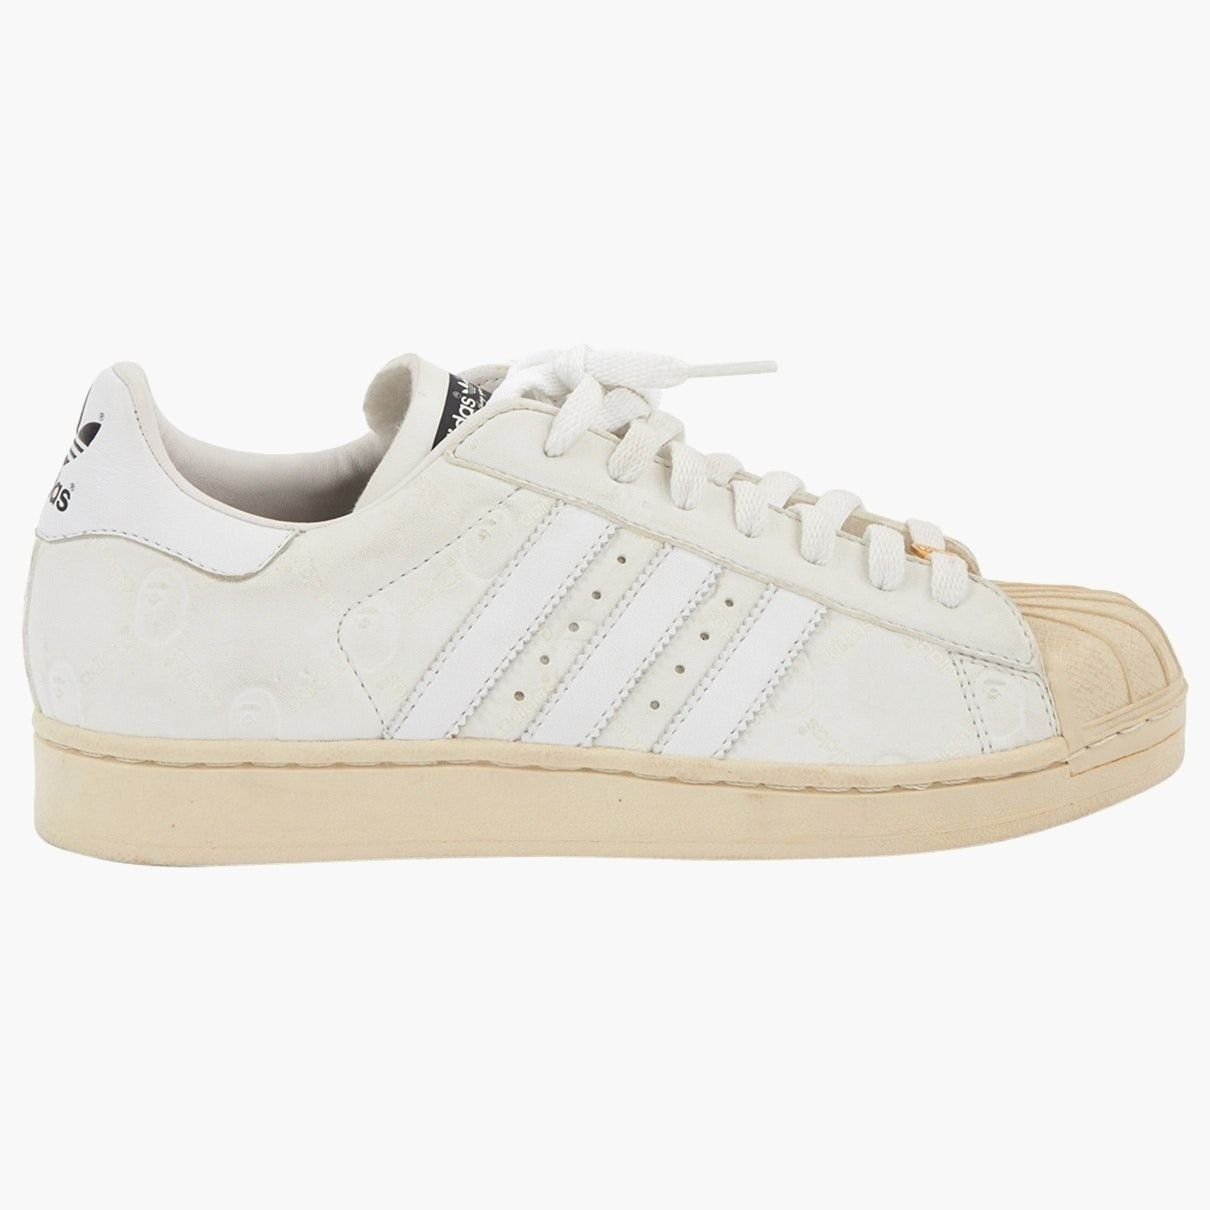 adidas chaussure femme hiver